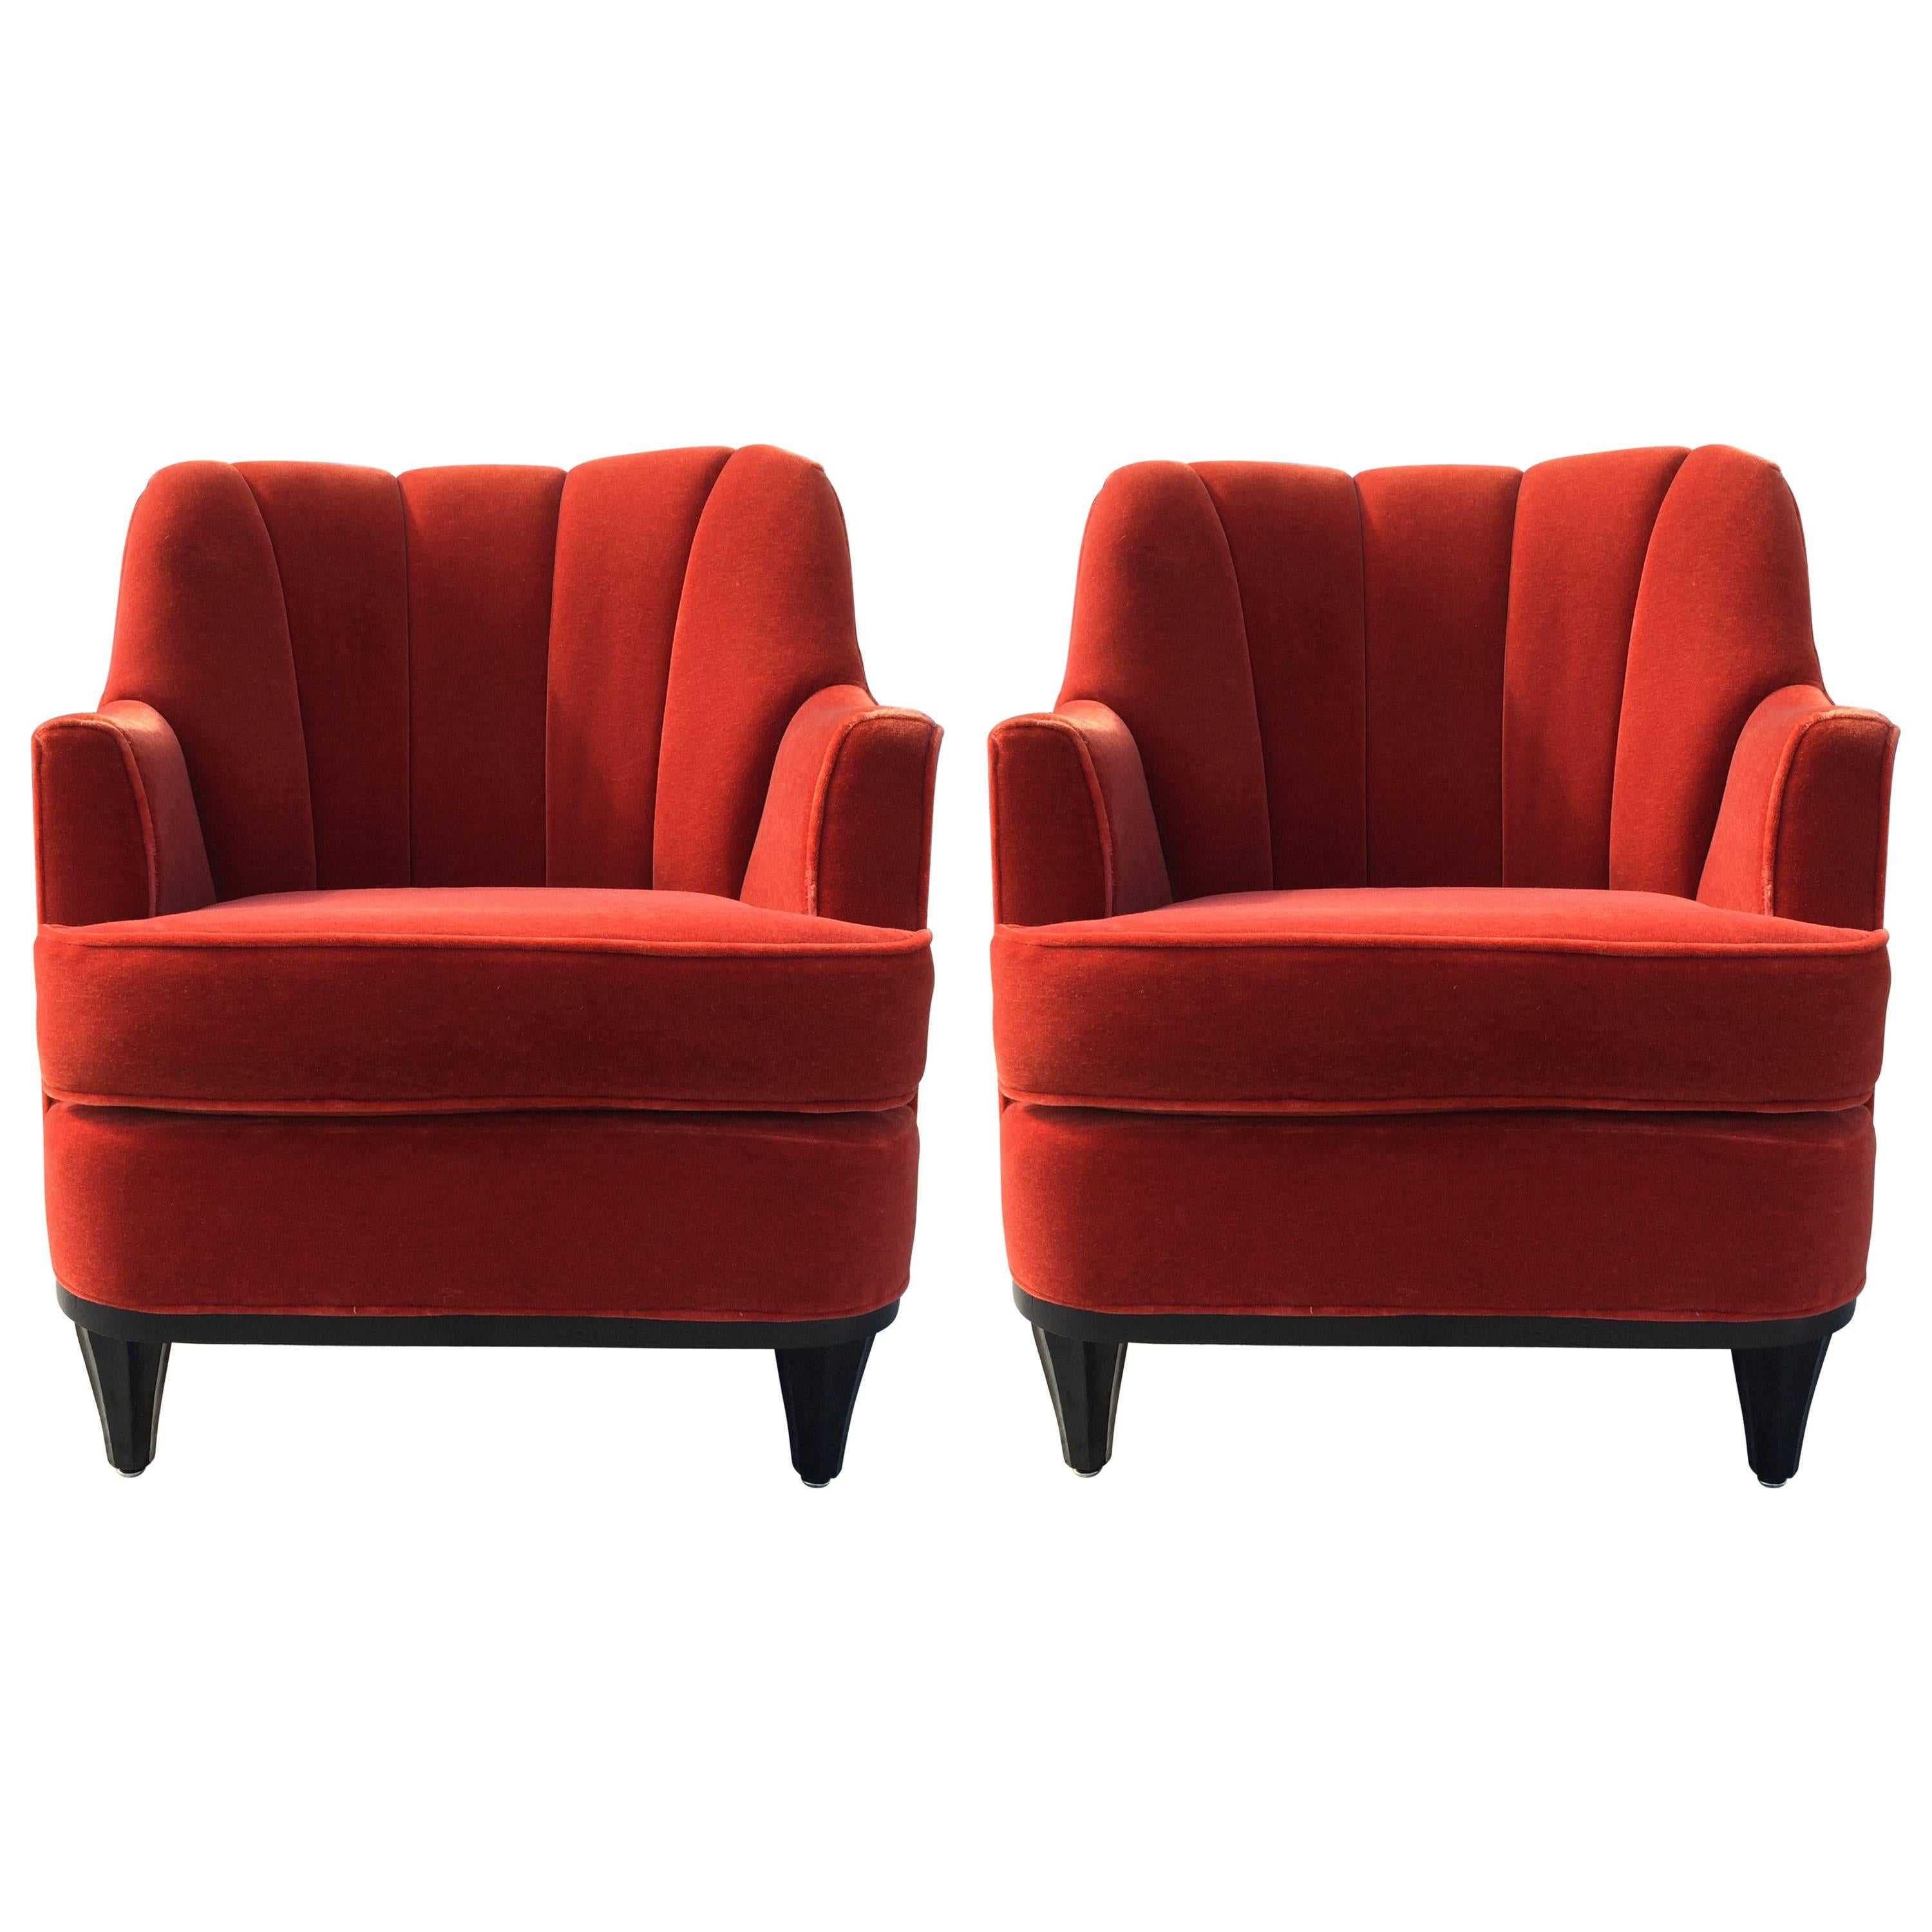 Pair of Lounge Chairs in the Style of Gio Ponti